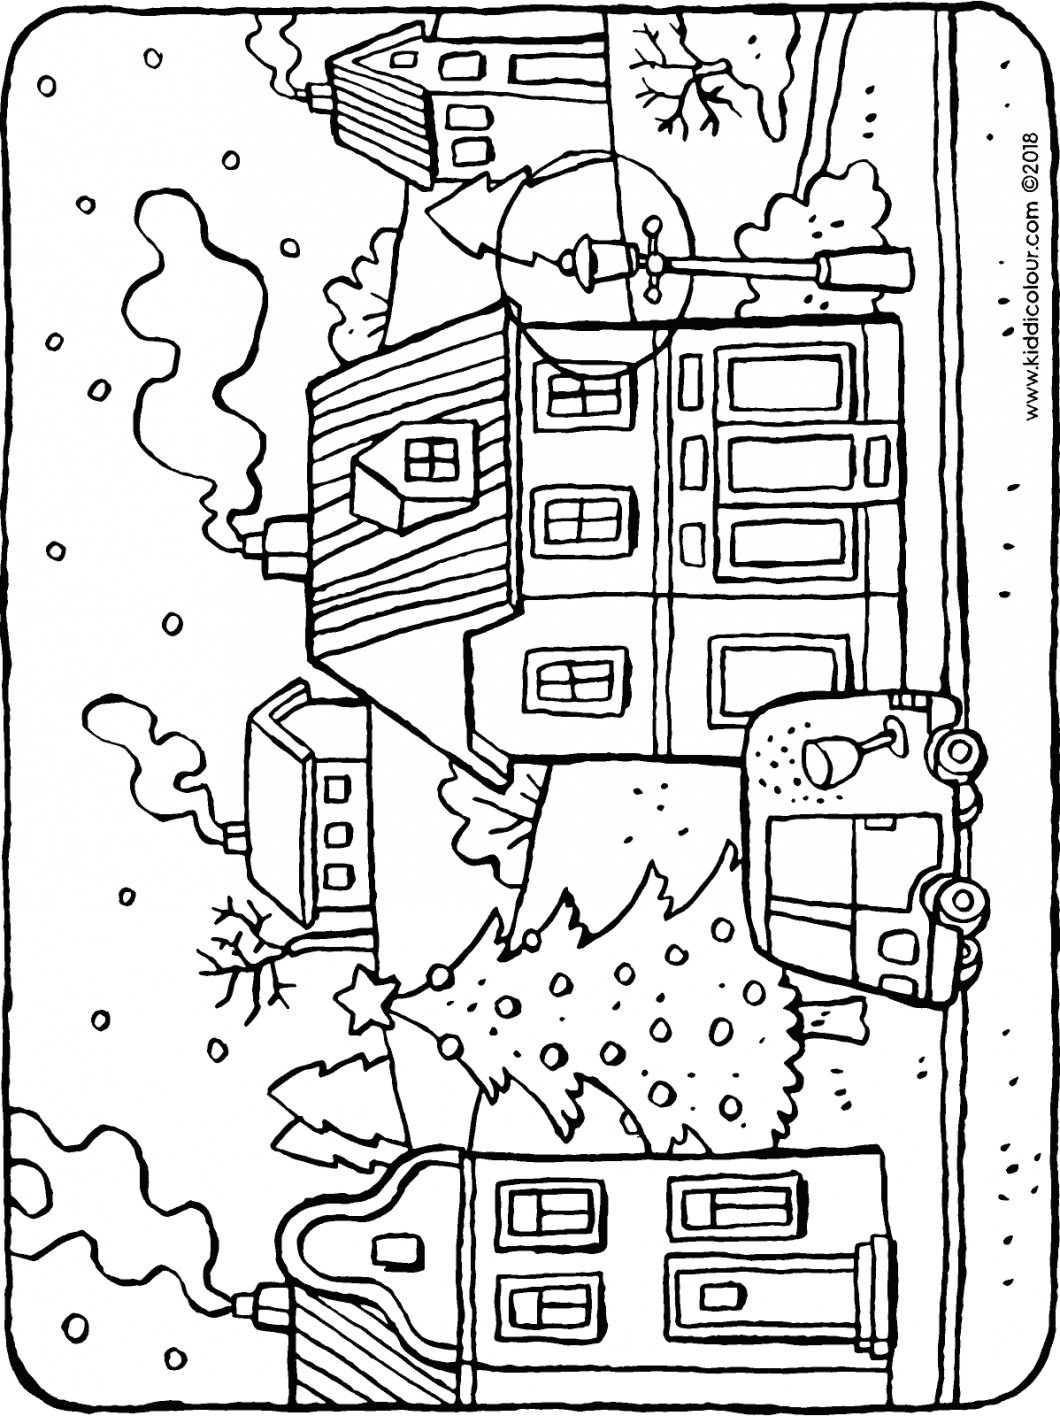 a village in winter colouring page drawing picture 01H